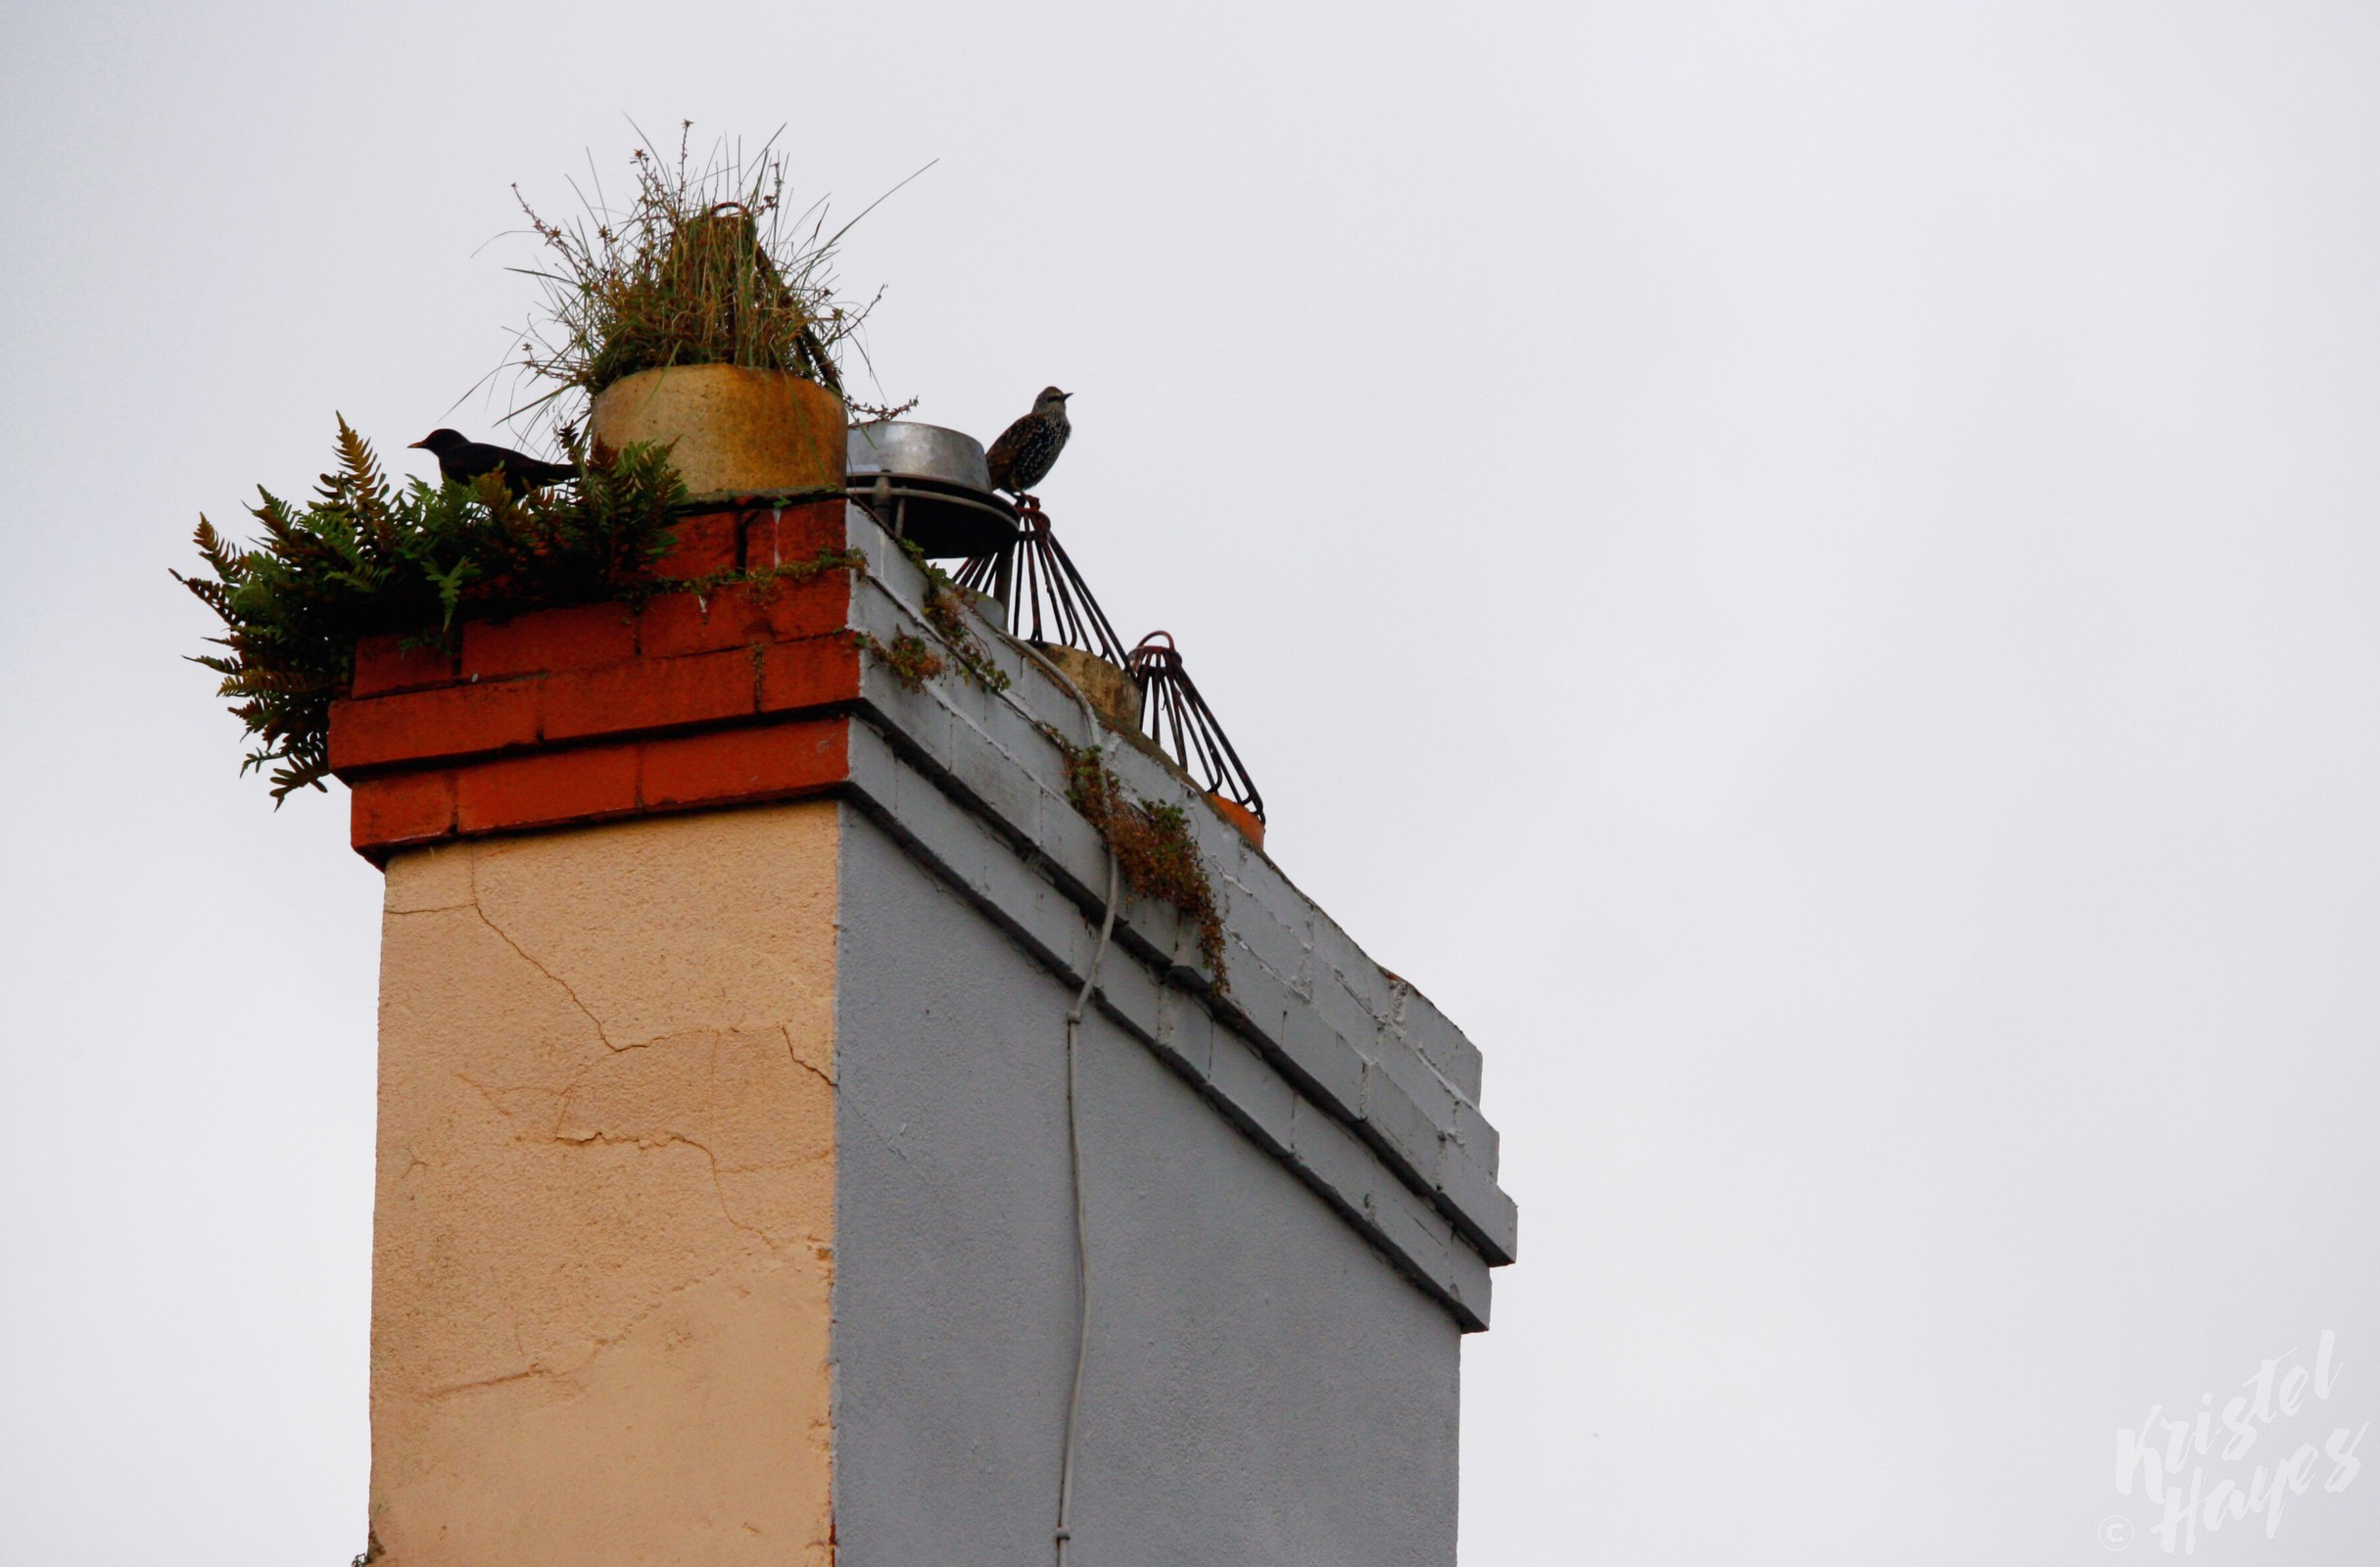 Carlow Chimney Birds-River Barrow, Ireland